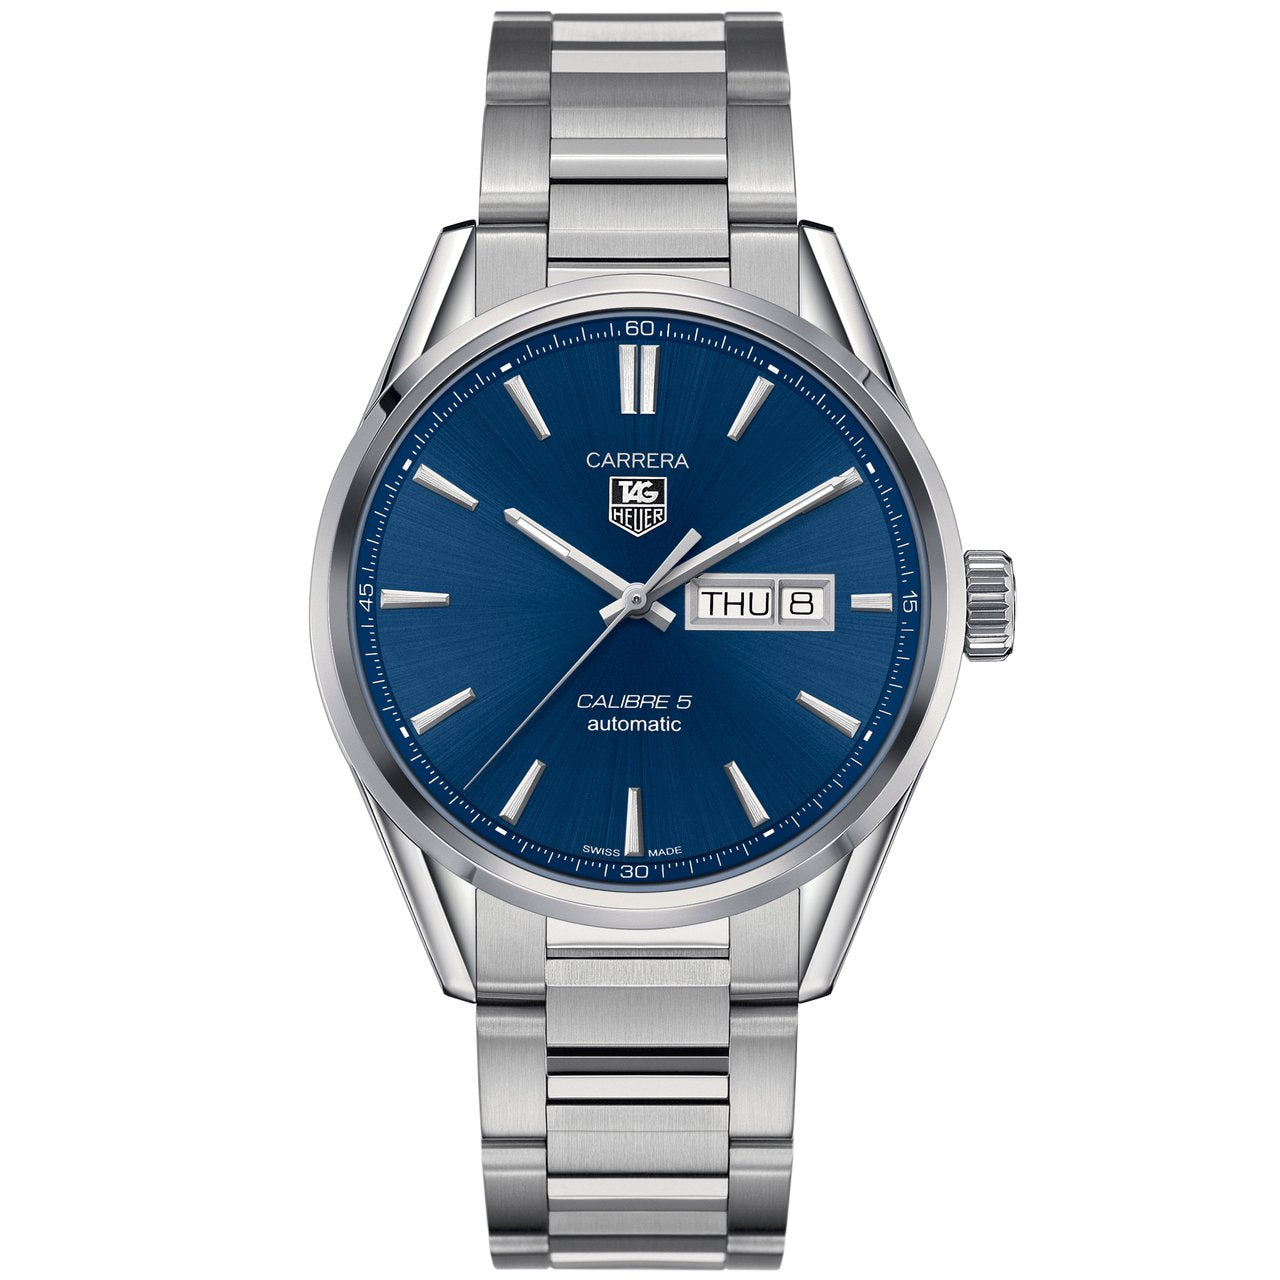 TAG Heuer Men's Carrera Automatic Calibre 5 Day-Date Watch with Blue Dial